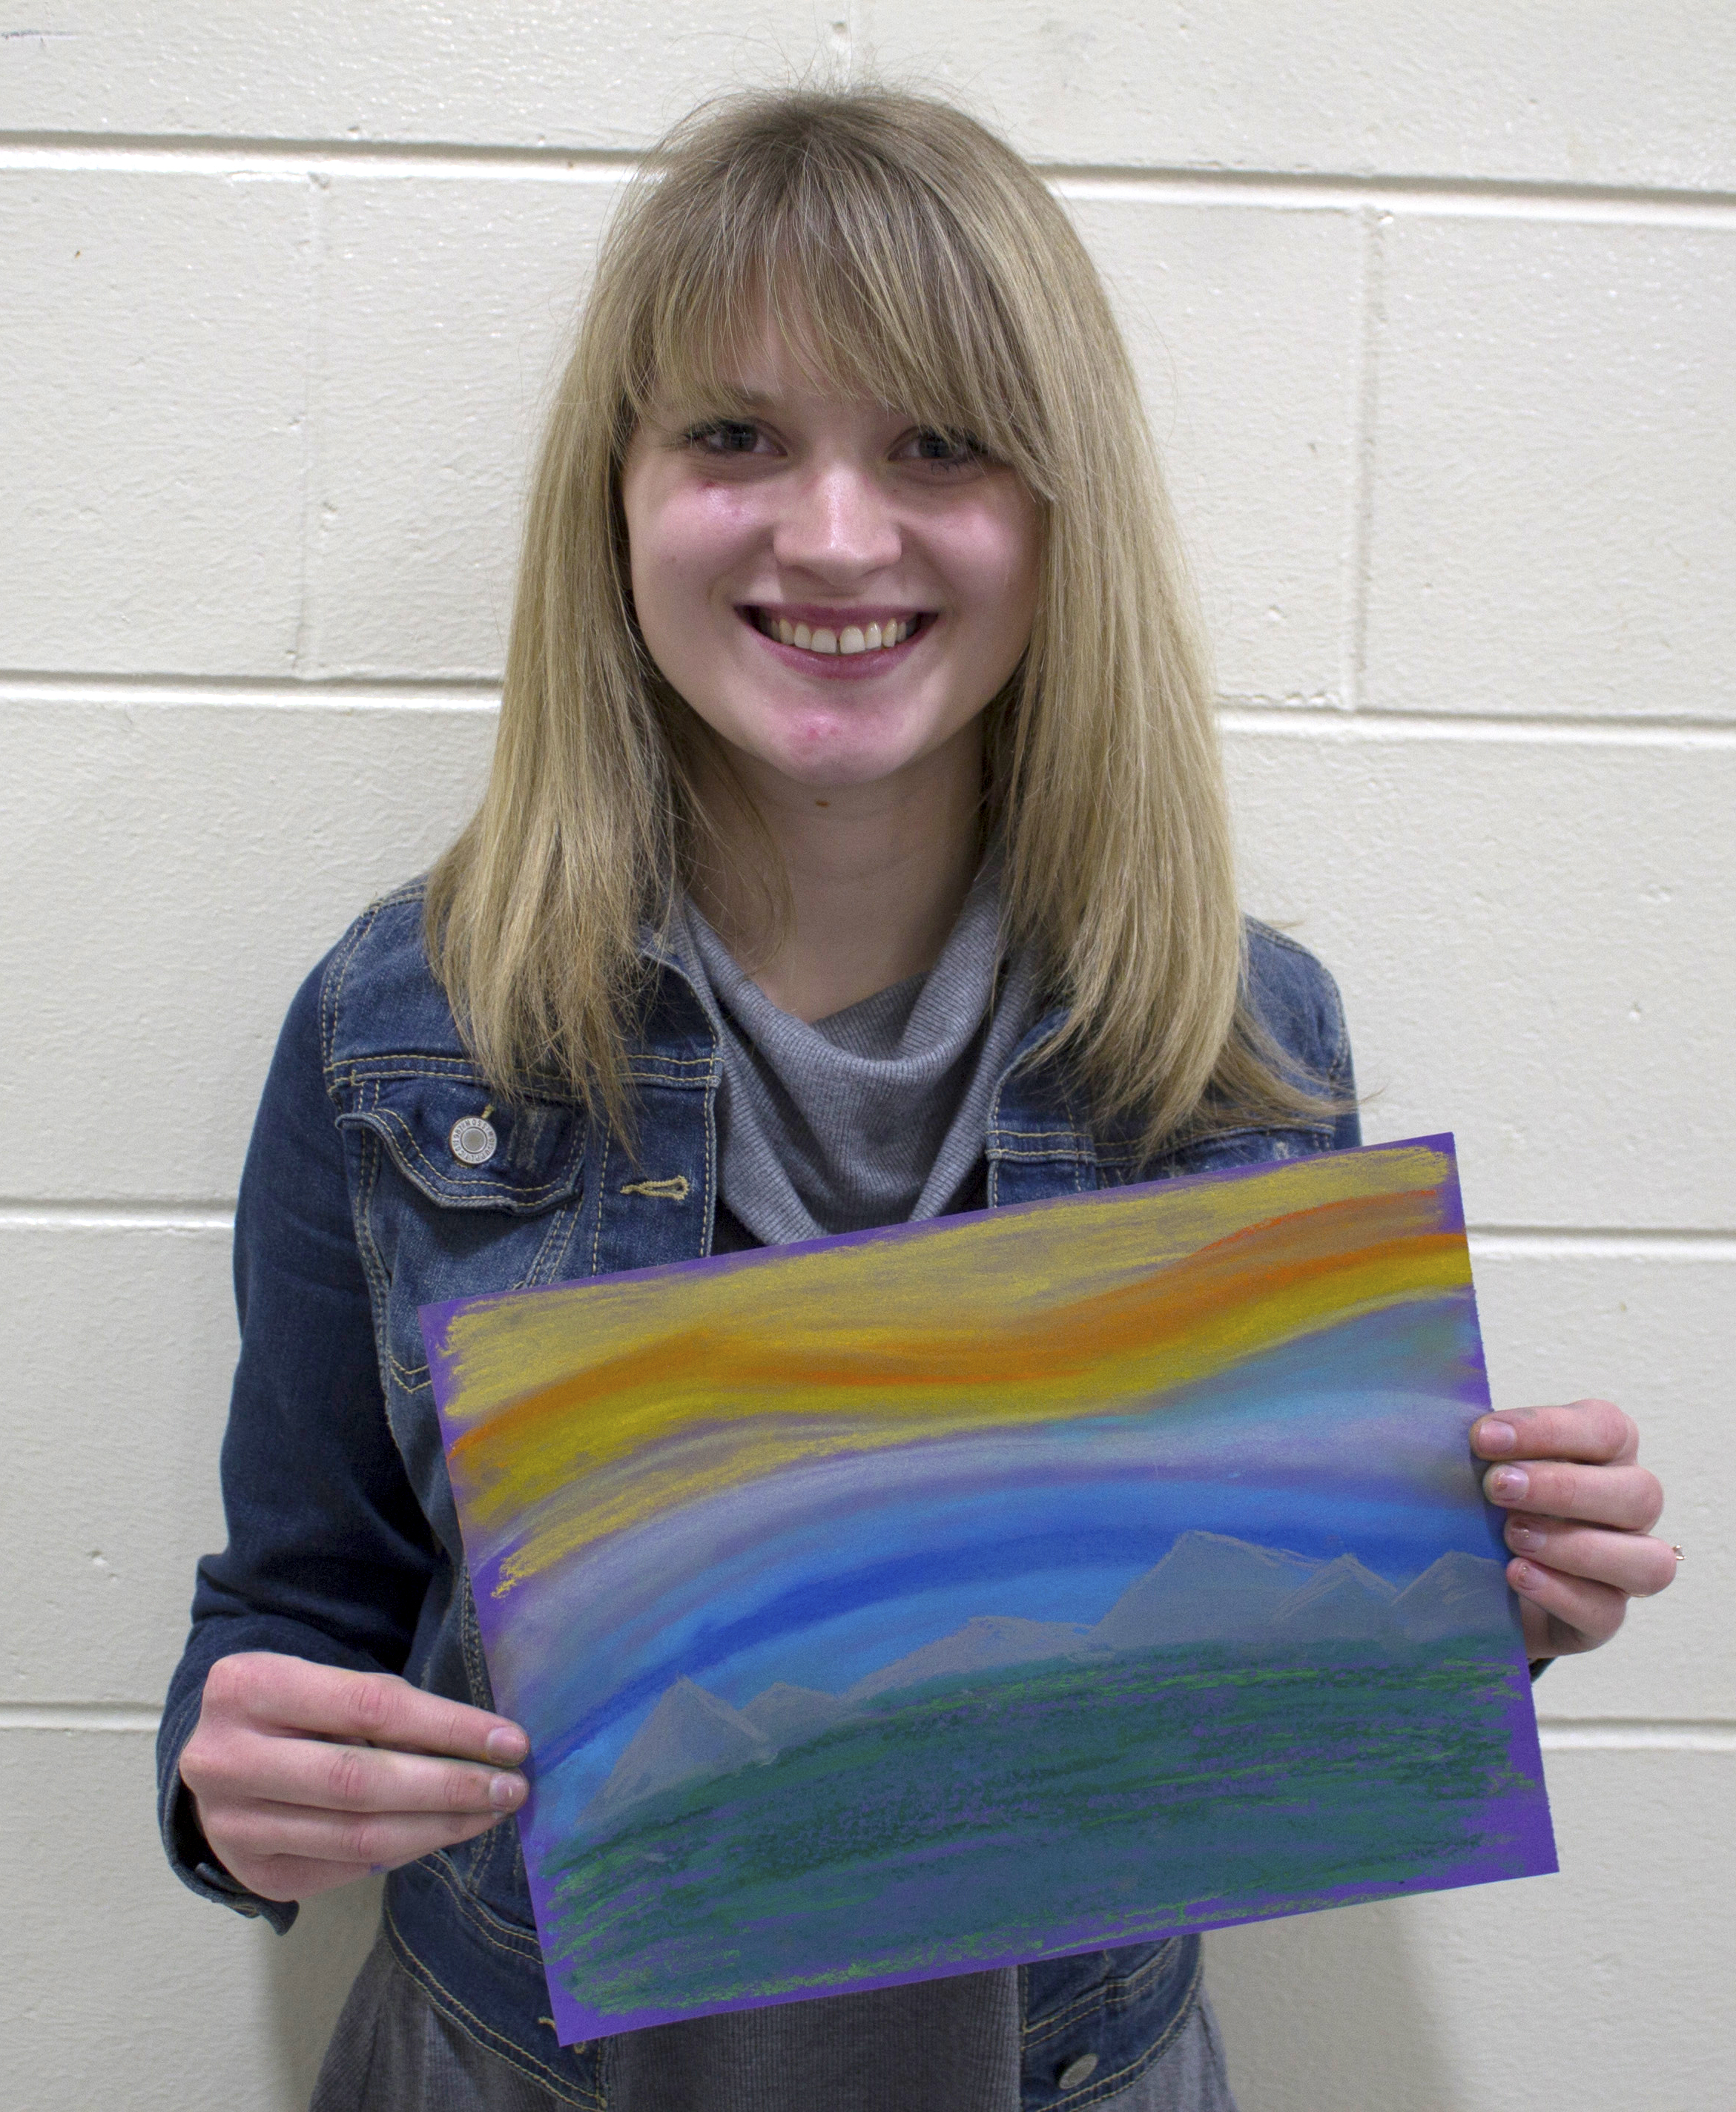 Marissa Pilney  UW-Stout Early Childhood Education INTERNSHIP: Arts and Crafts at the Boys and Girls Club LOCATION: River Heights Elementary